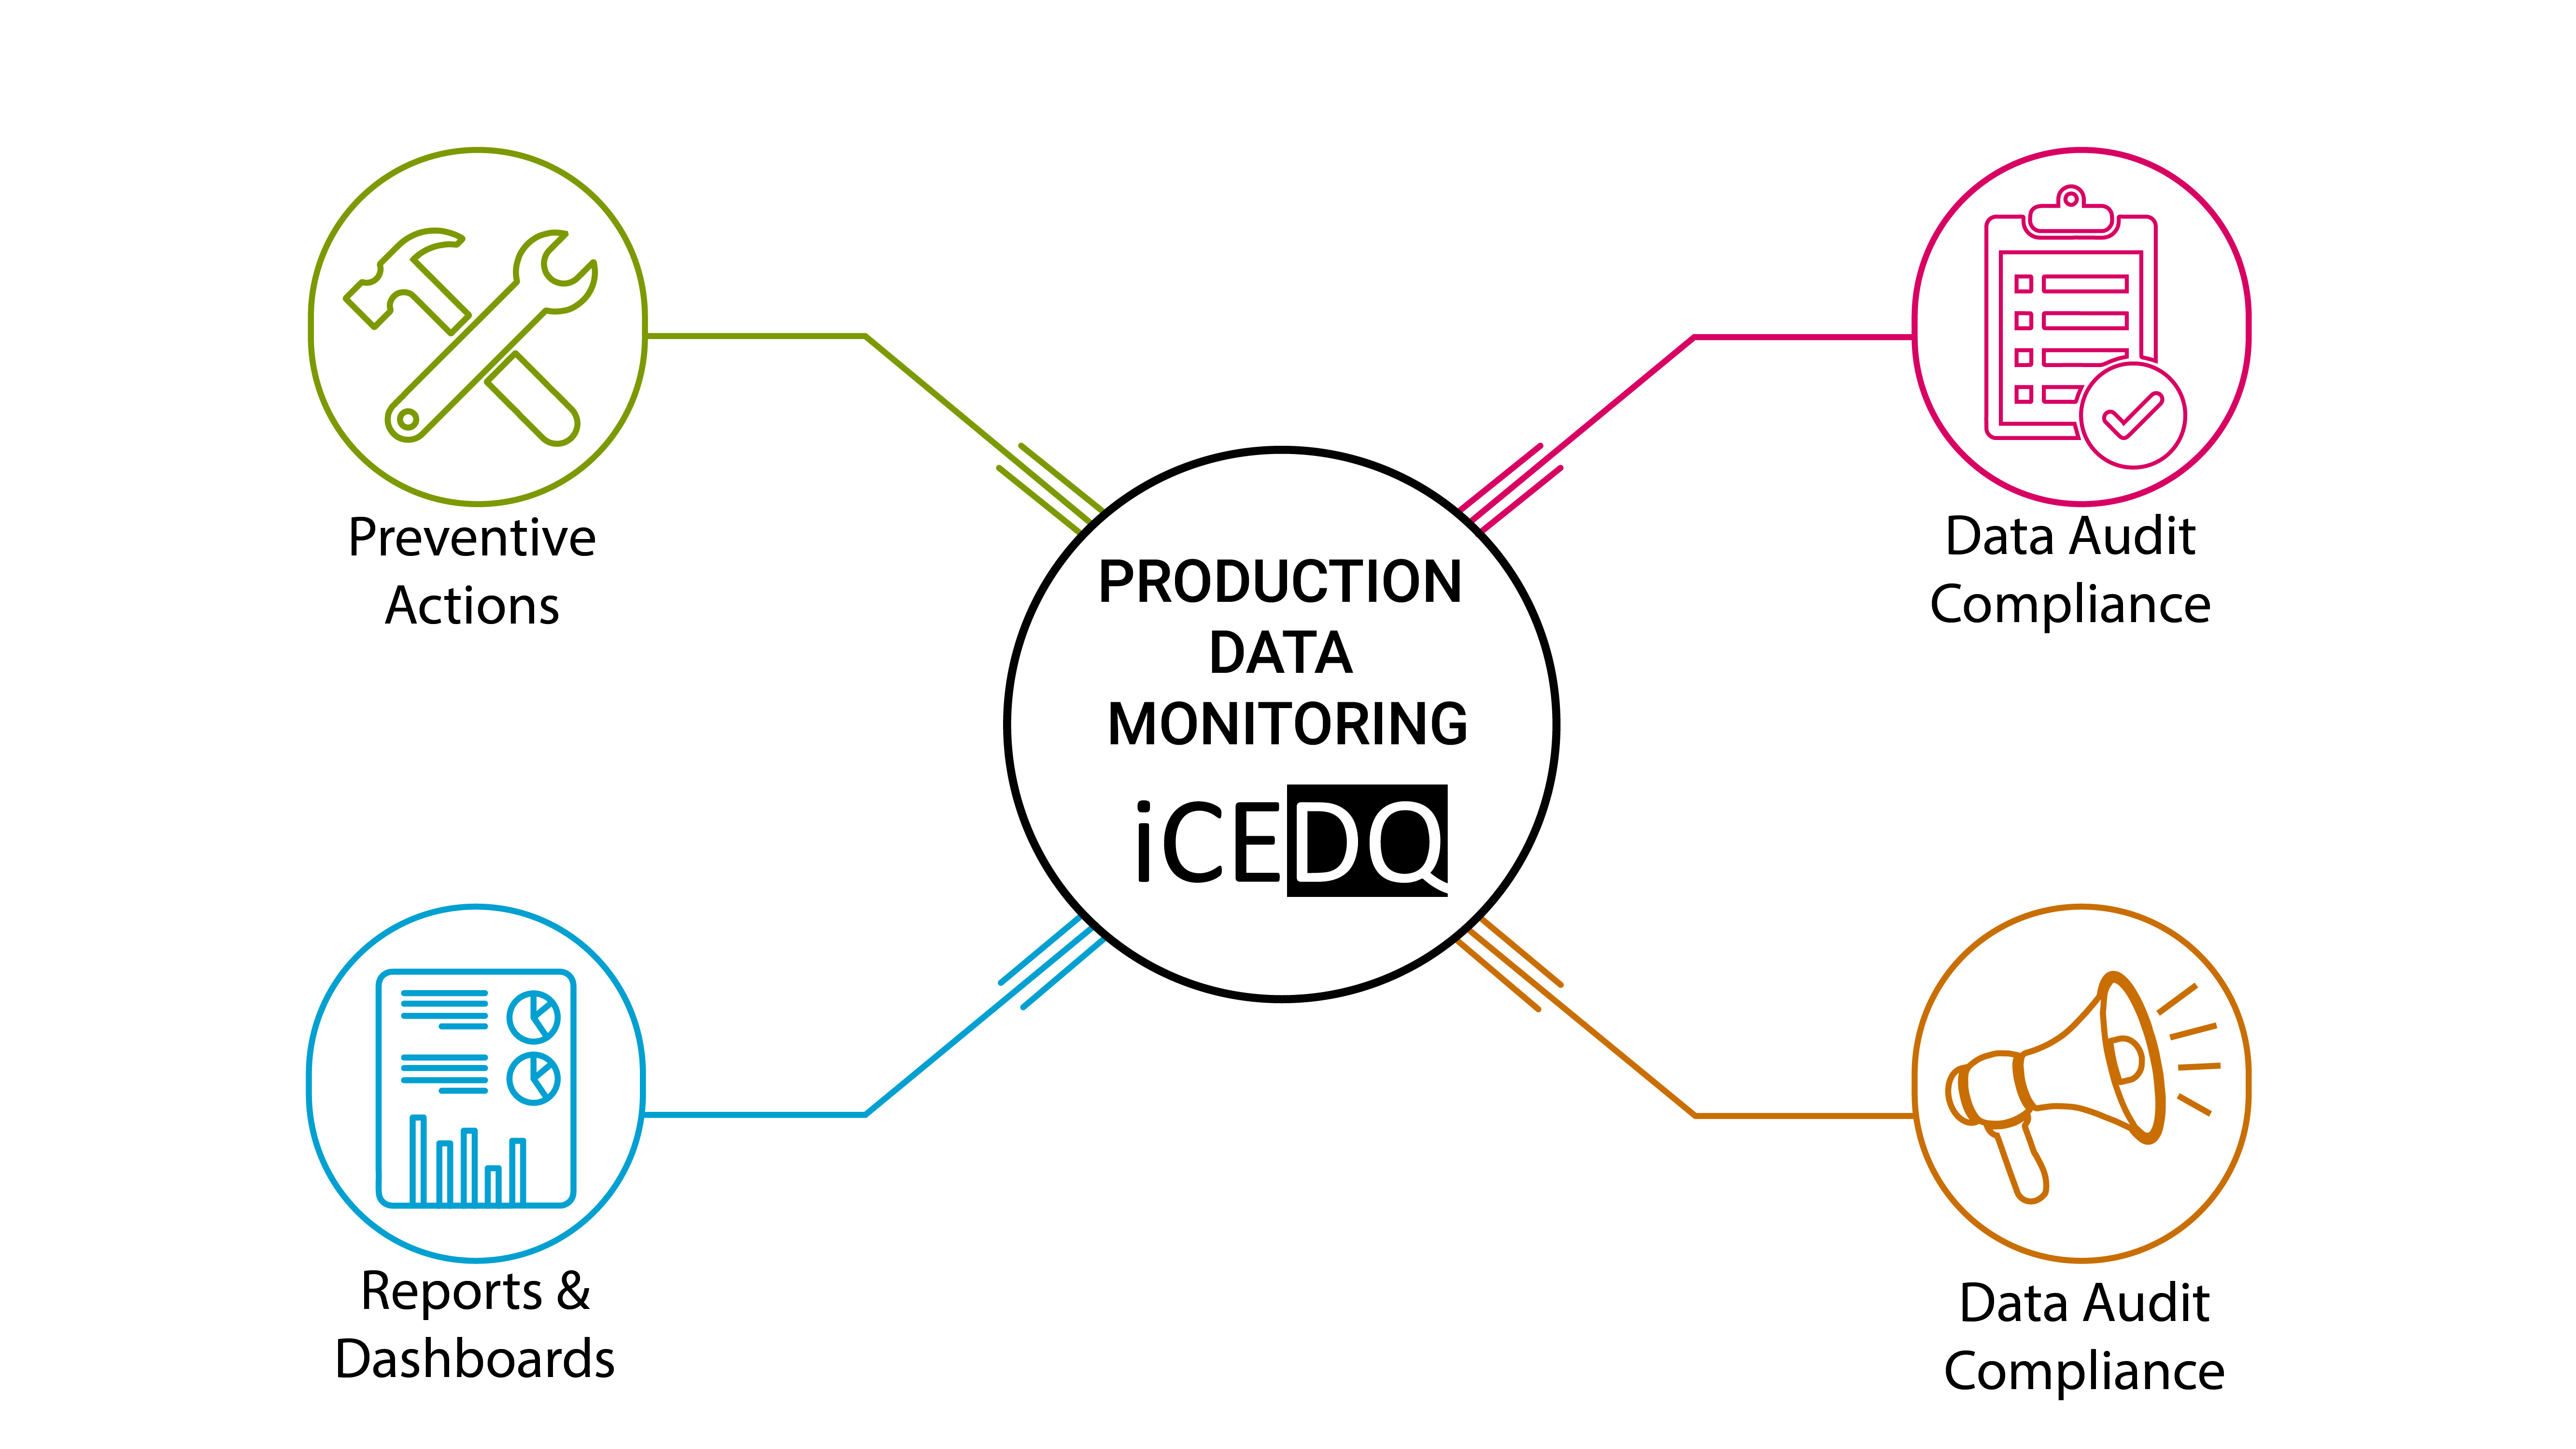 Product data monitoring with iCEDQ